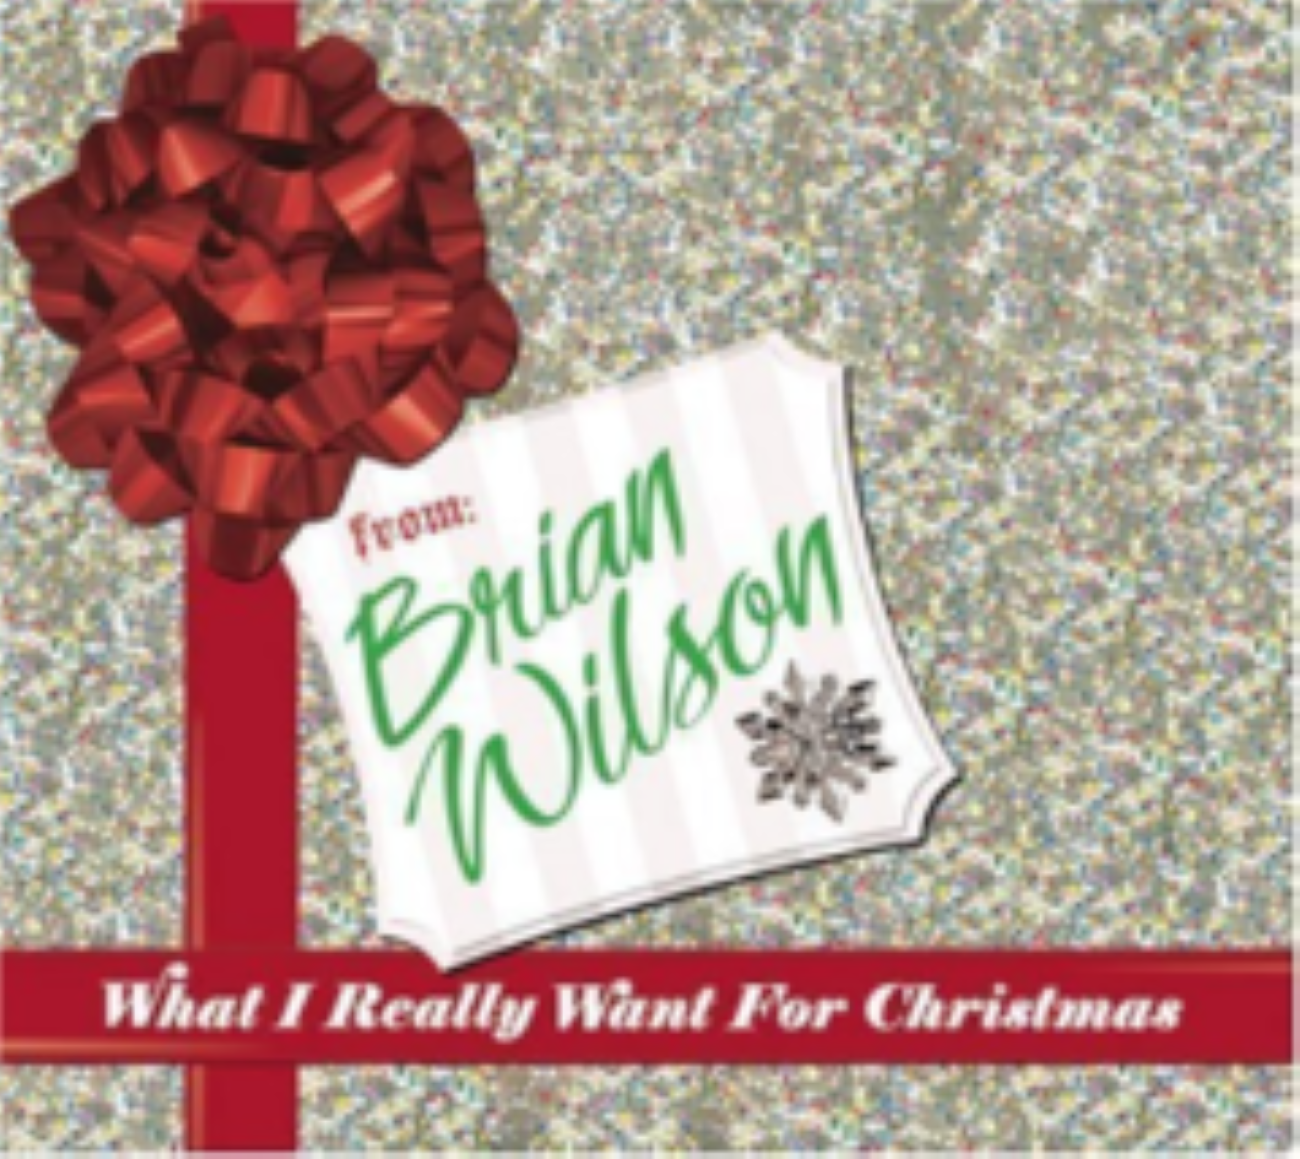 What I Really Want for Christmas by Brian Wilson Cd